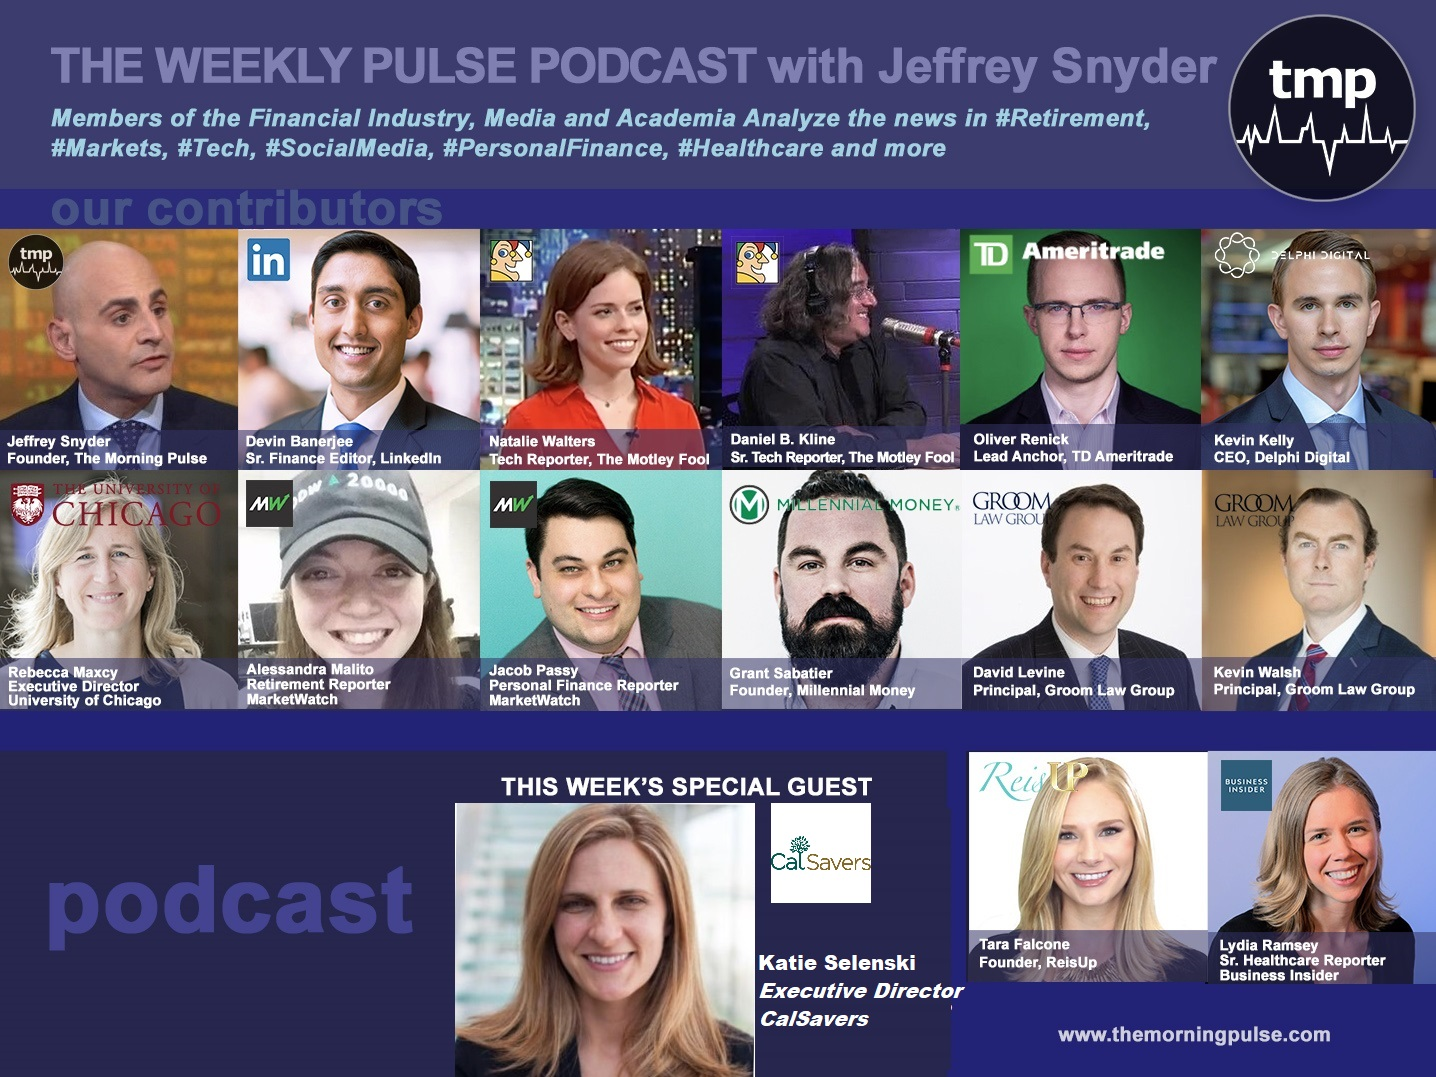 (Podcast) 8/18/2019 In this episode: (1) CalSavers Executive Director Katie Selenski joins us to discuss recent successes of the Program since it's July 1, 2019 rollout, (2) Ancestry.com thinks about a move in to healthcare and drug negotiations go viral, (3) the inverted yield curve and recession sentiment, & more.